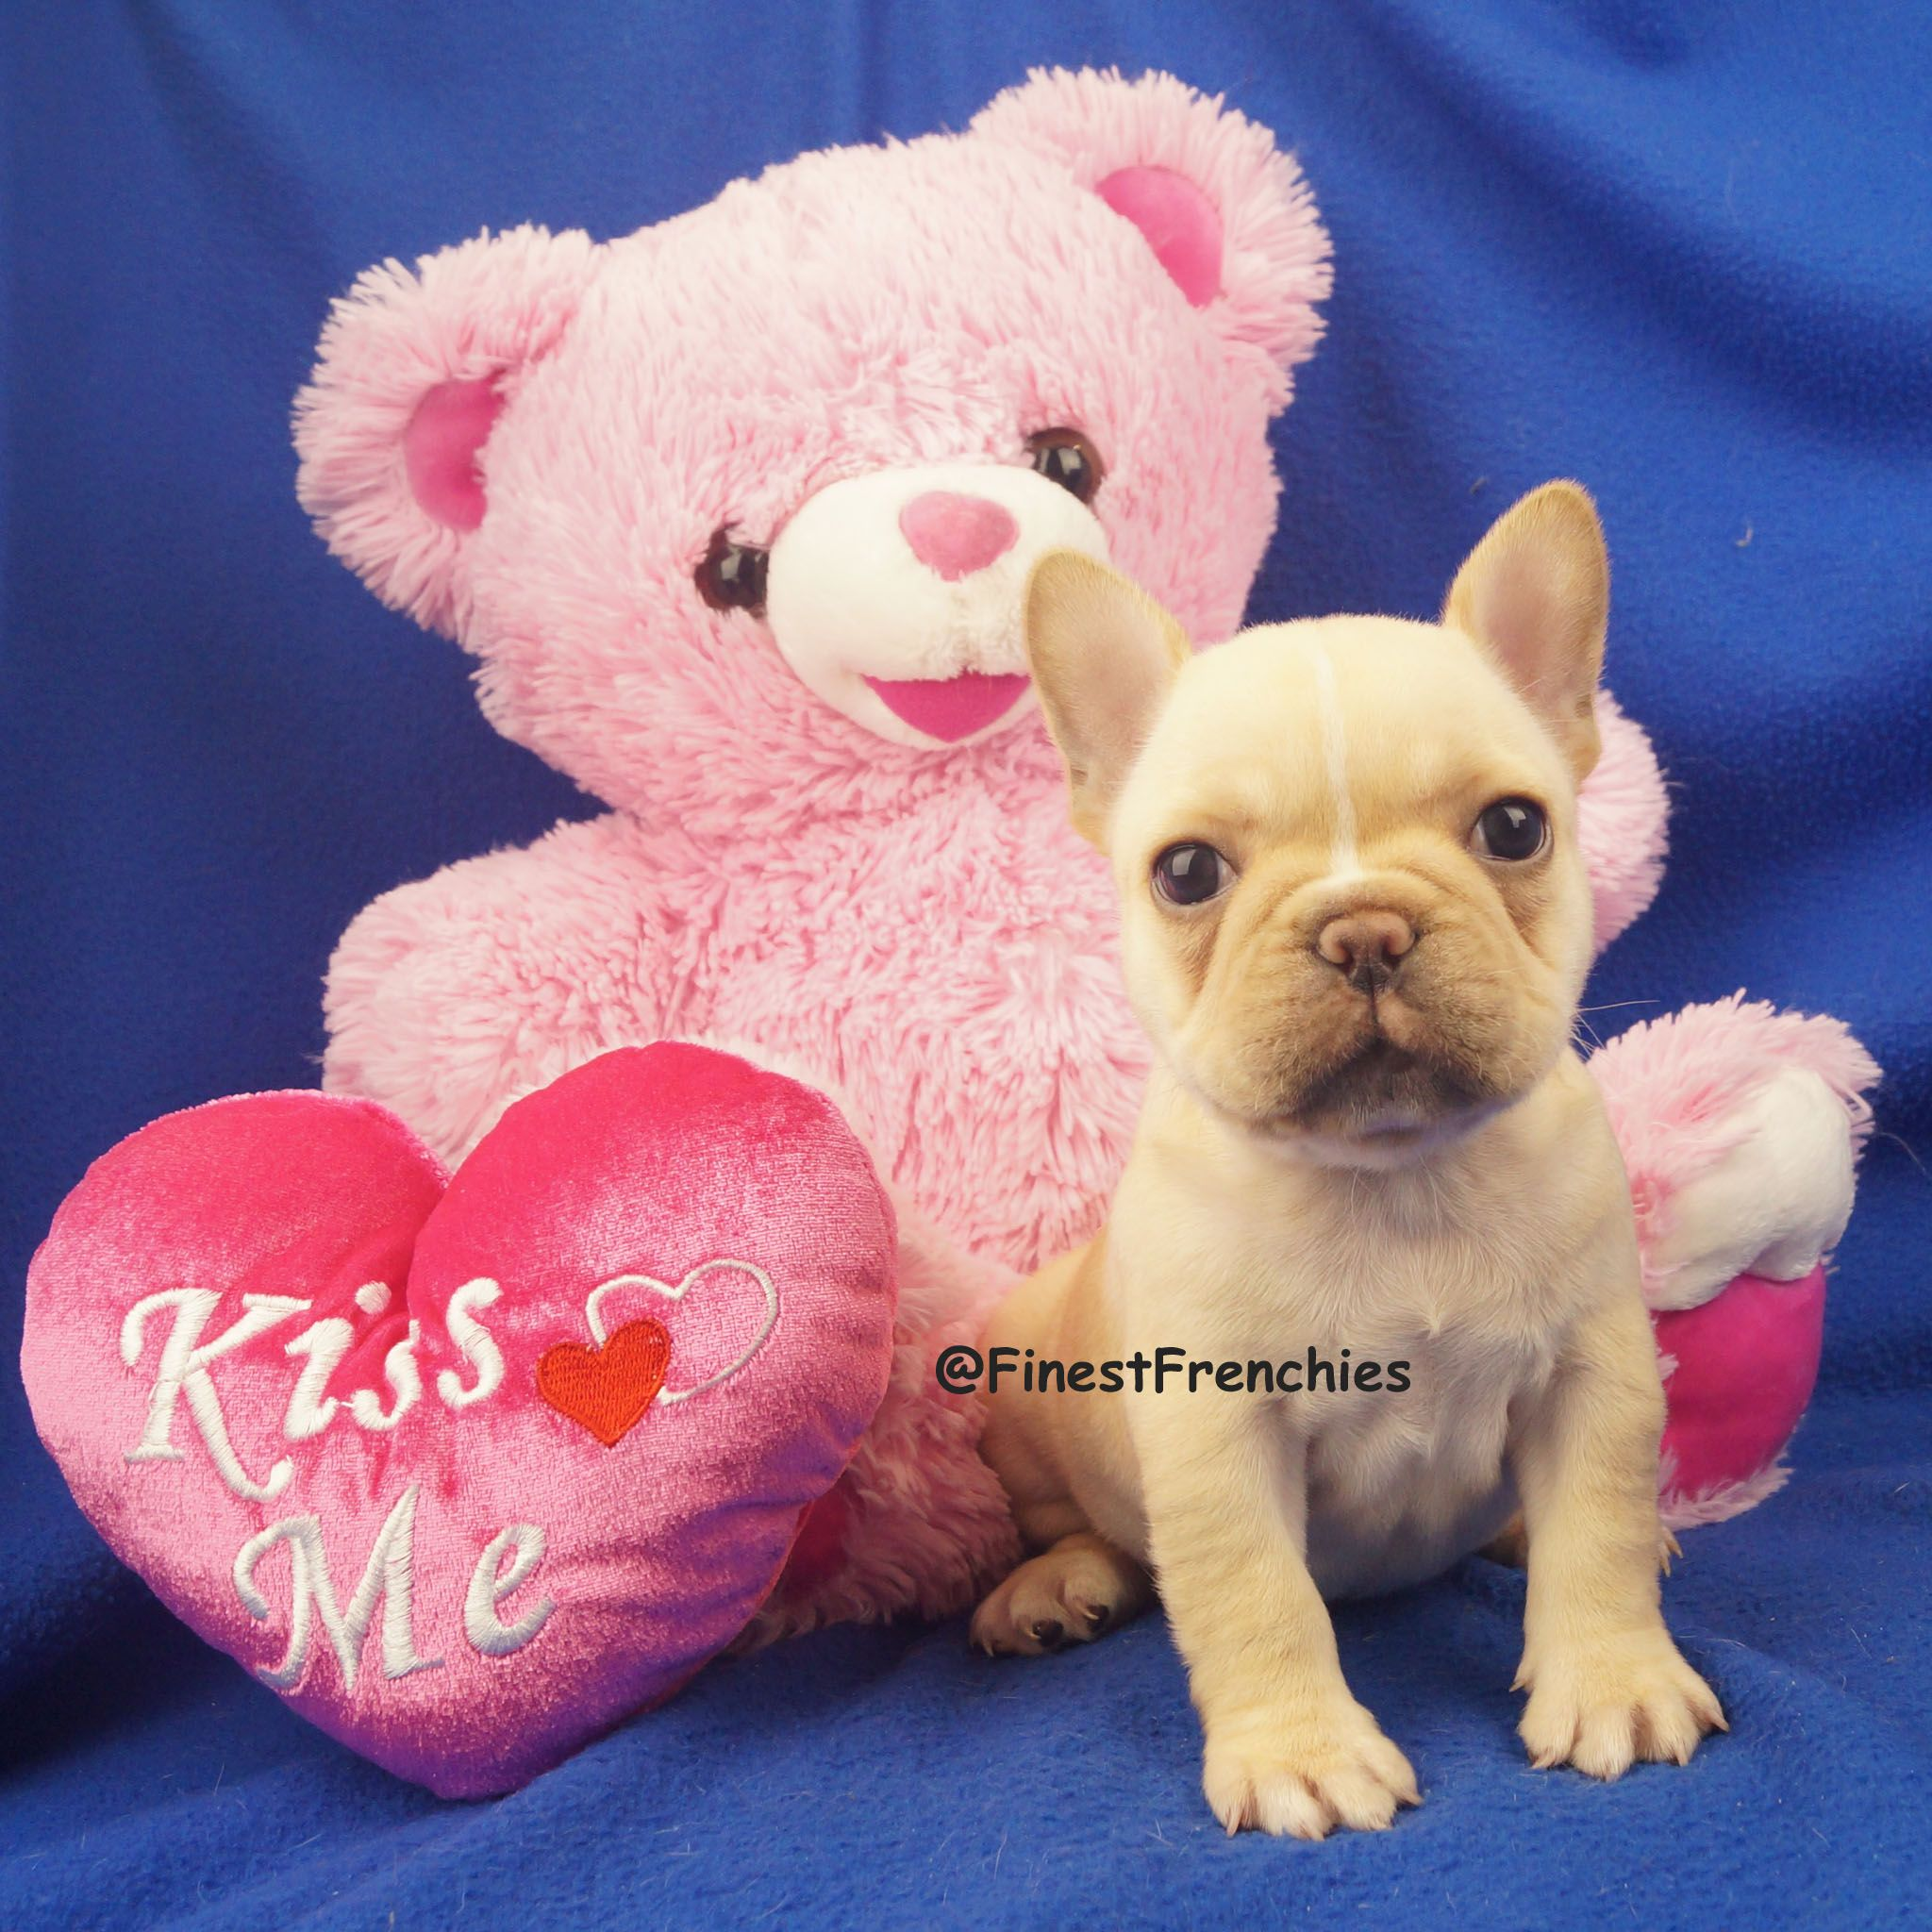 Kiss Me Do You Need An Adorable Frenchie Puppy To Give You Kisses